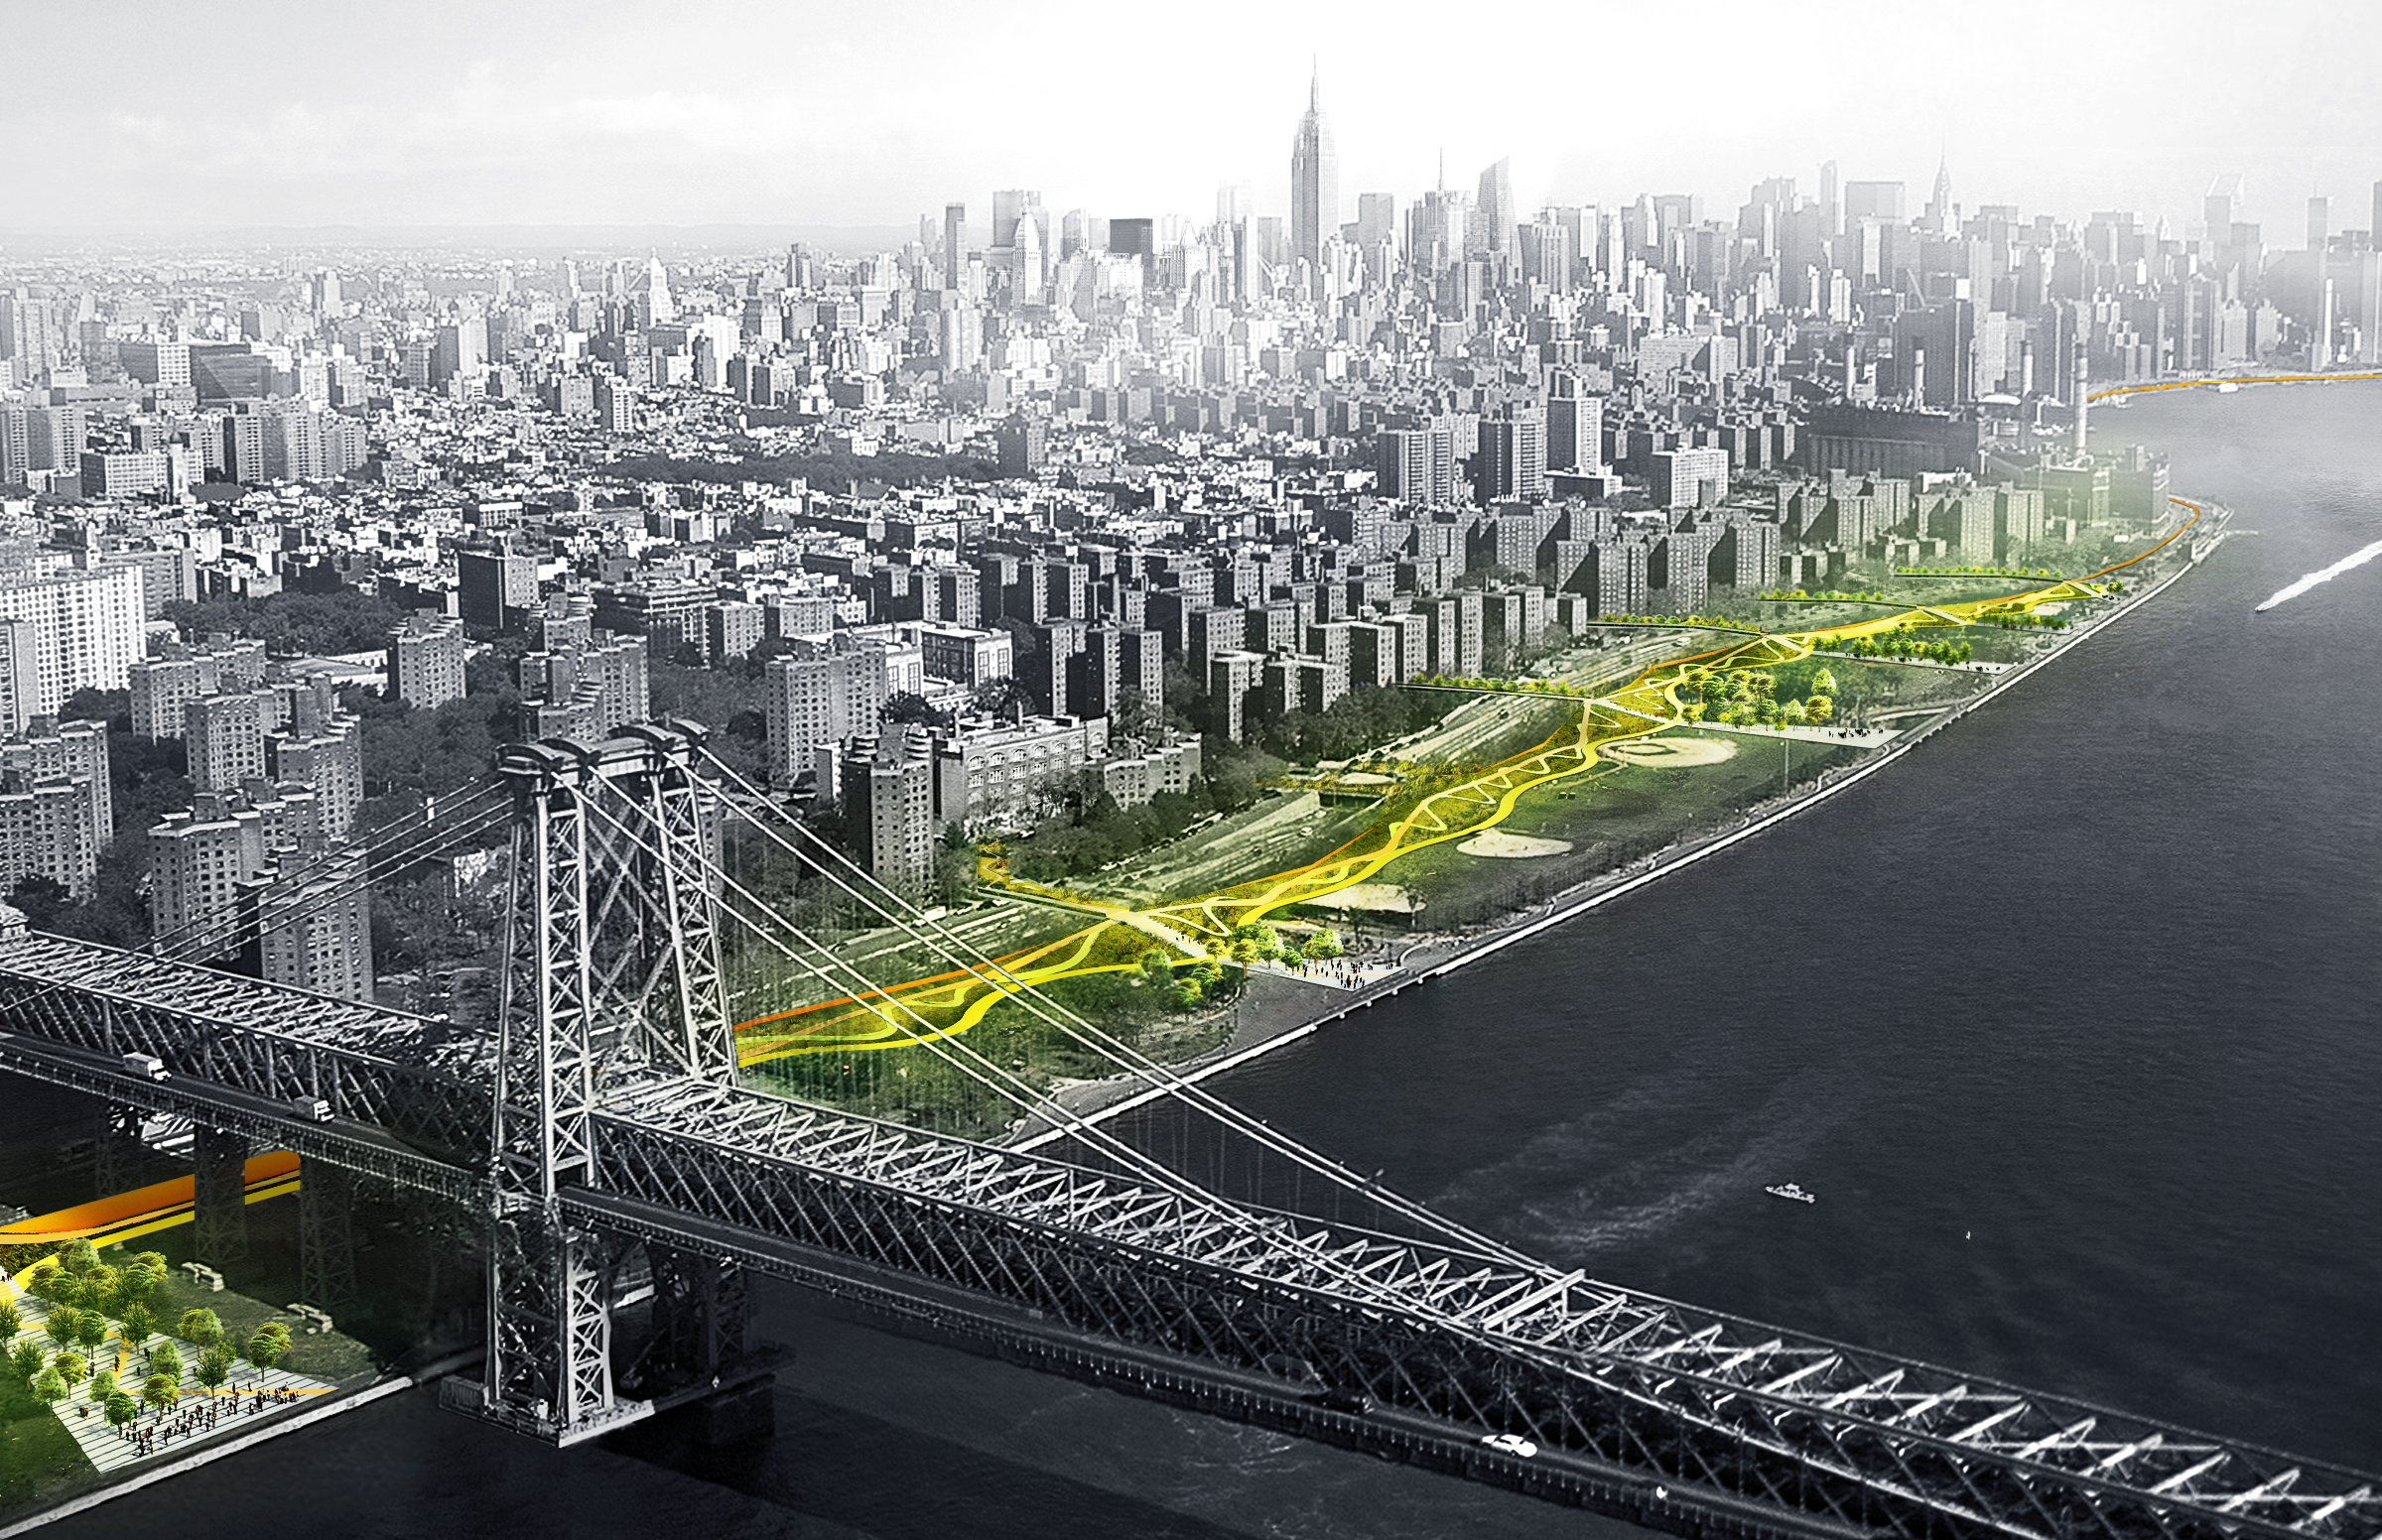 First phase of Bjarke Ingels' BIG U storm protection system